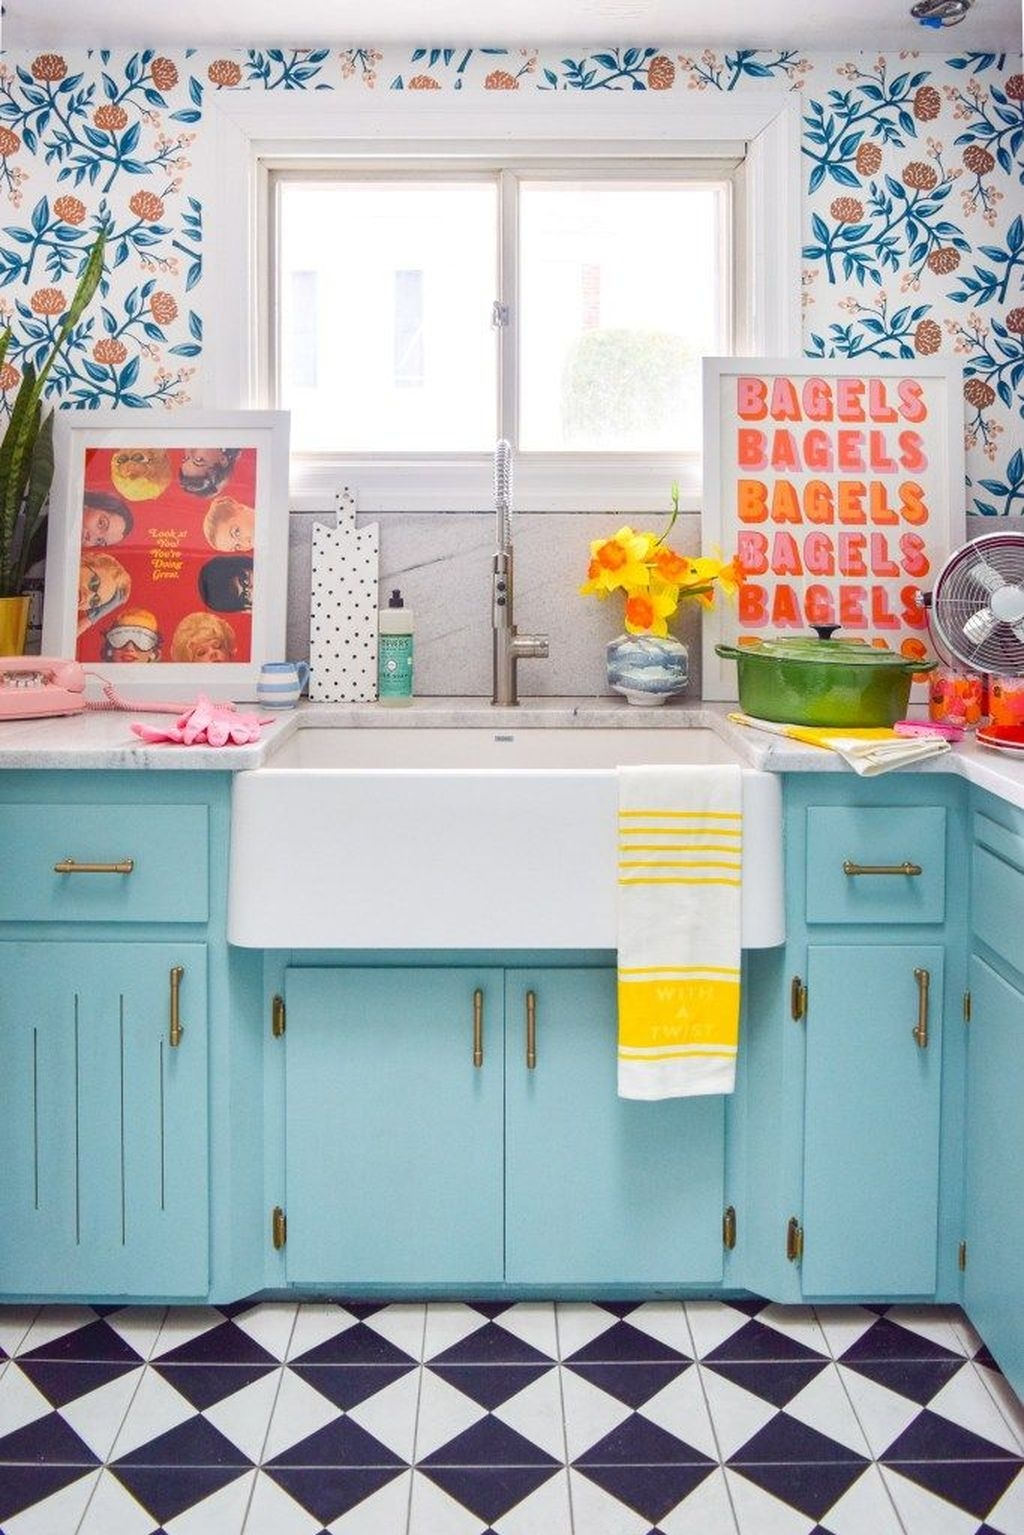 Outstanding Sink Ideas For Kitchen Home You Should Try23